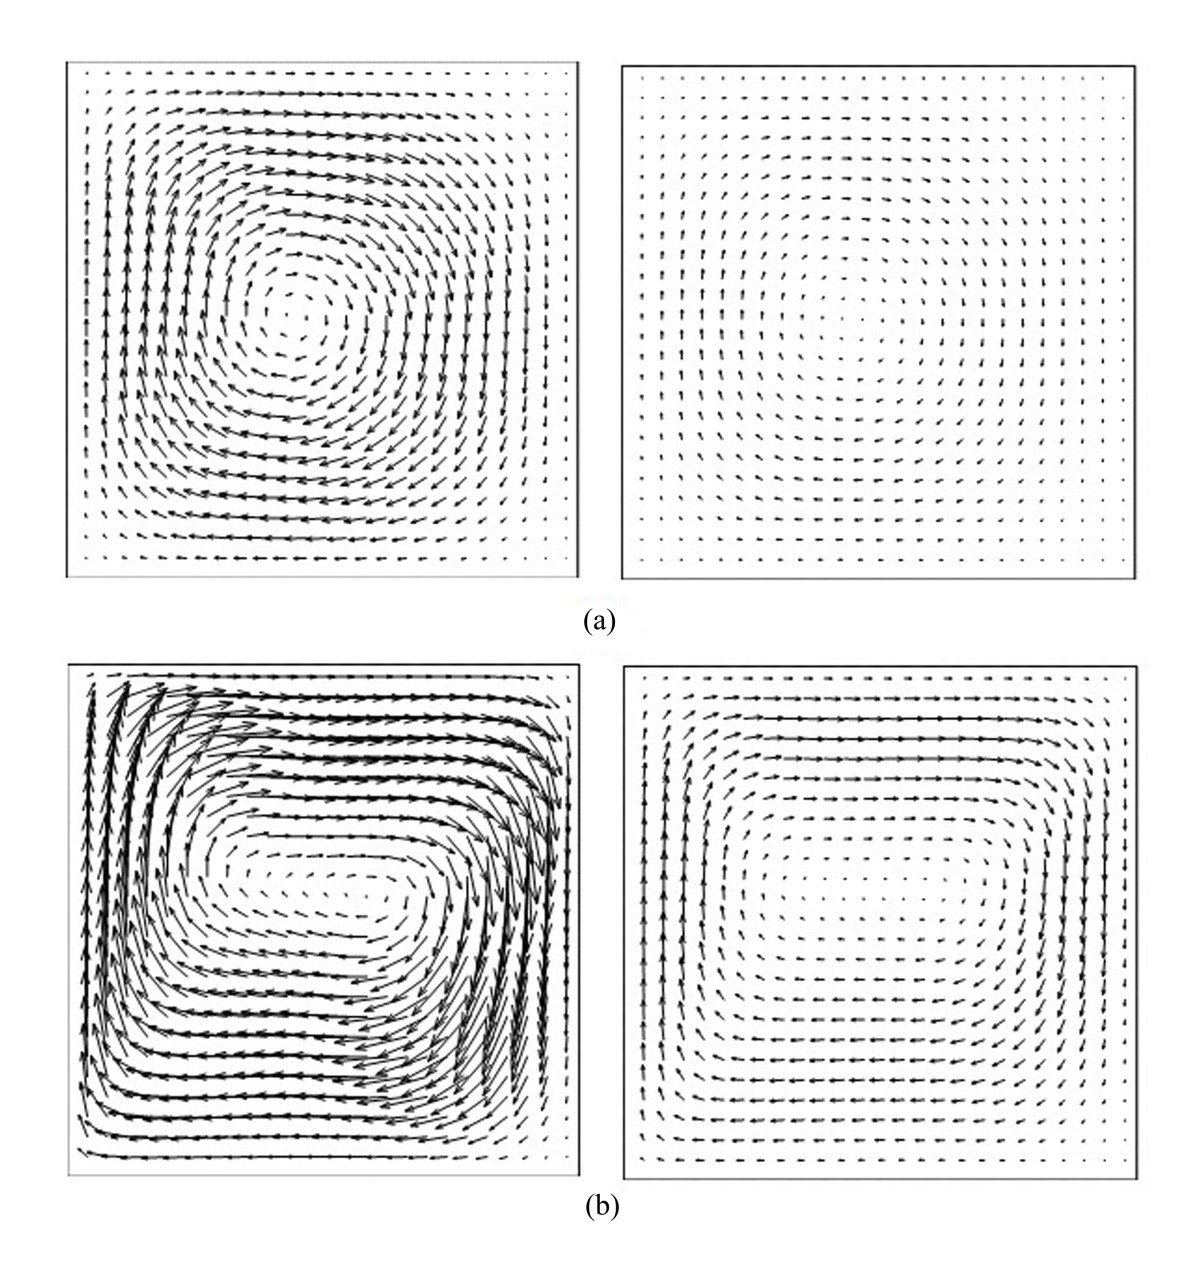 http://static-content.springer.com/image/art%3A10.1186%2F1556-276X-8-56/MediaObjects/11671_2012_Article_1363_Fig4_HTML.jpg